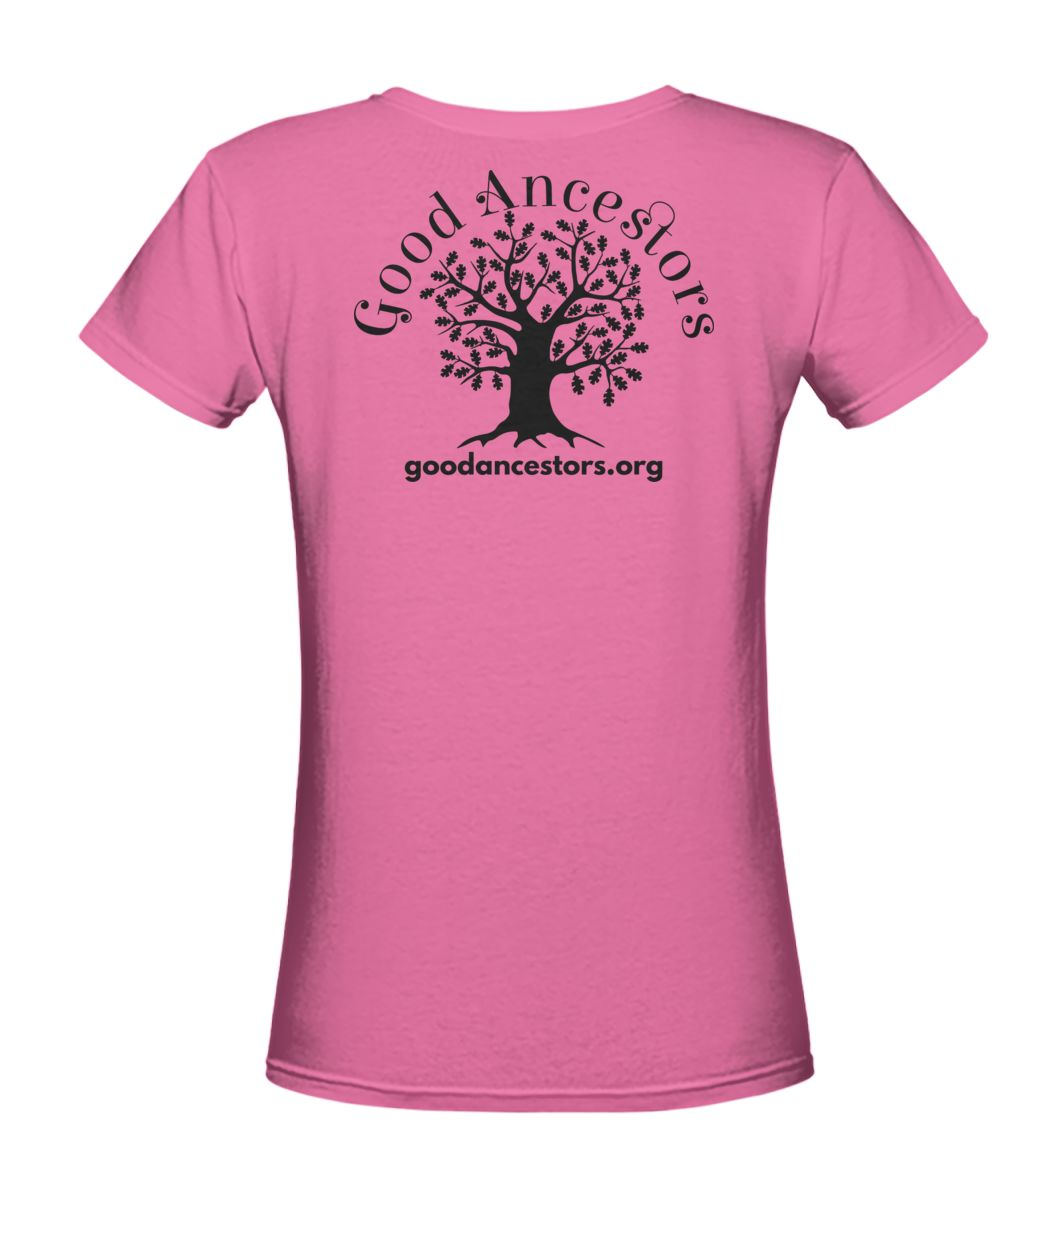 Good Ancestors Women's V-Neck Tee - Lt